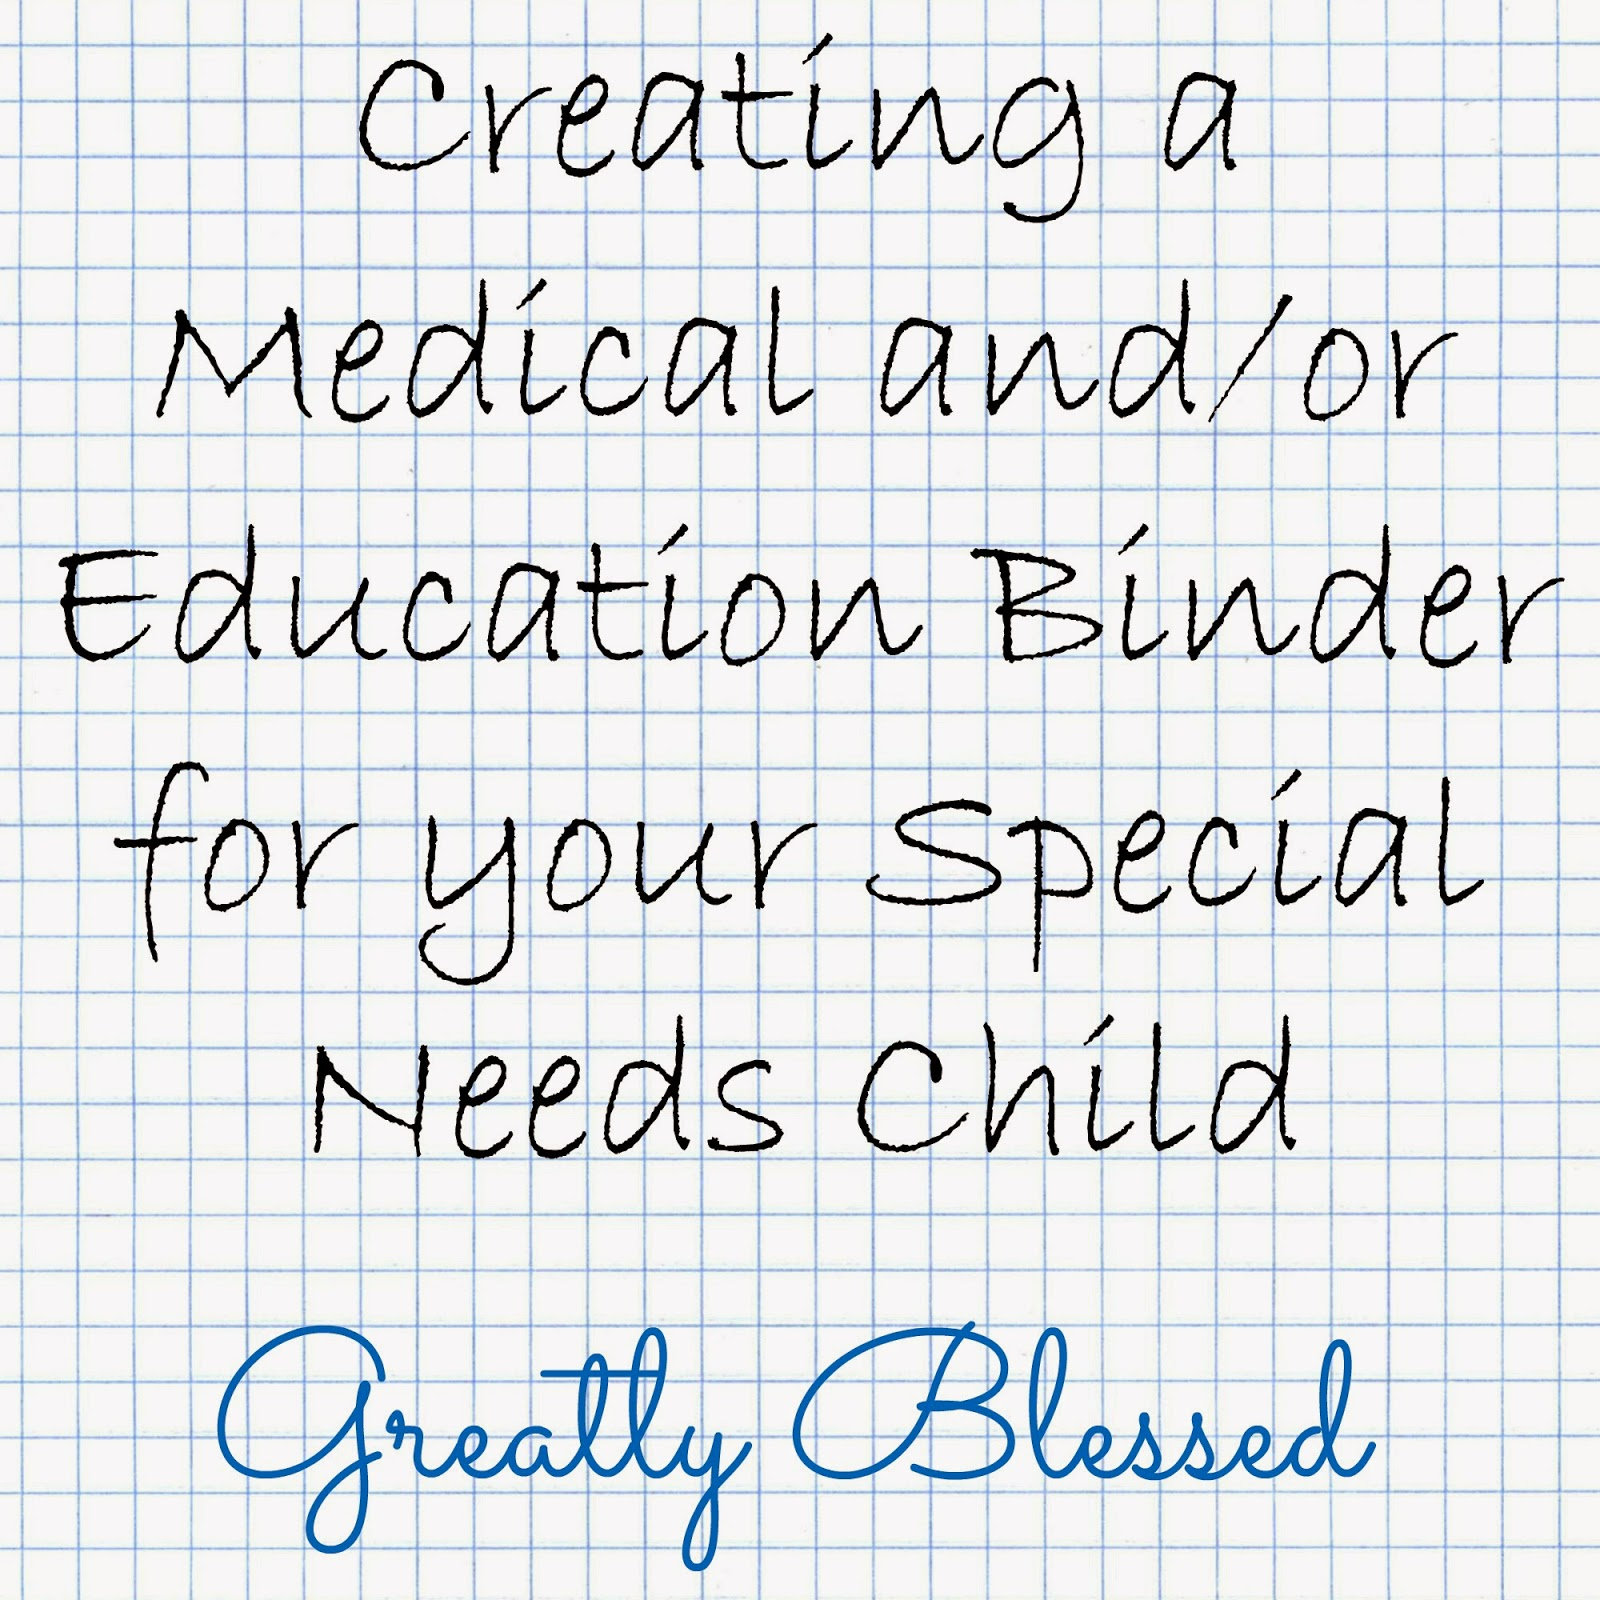 greatly blessed creating a medical and or education binder for your